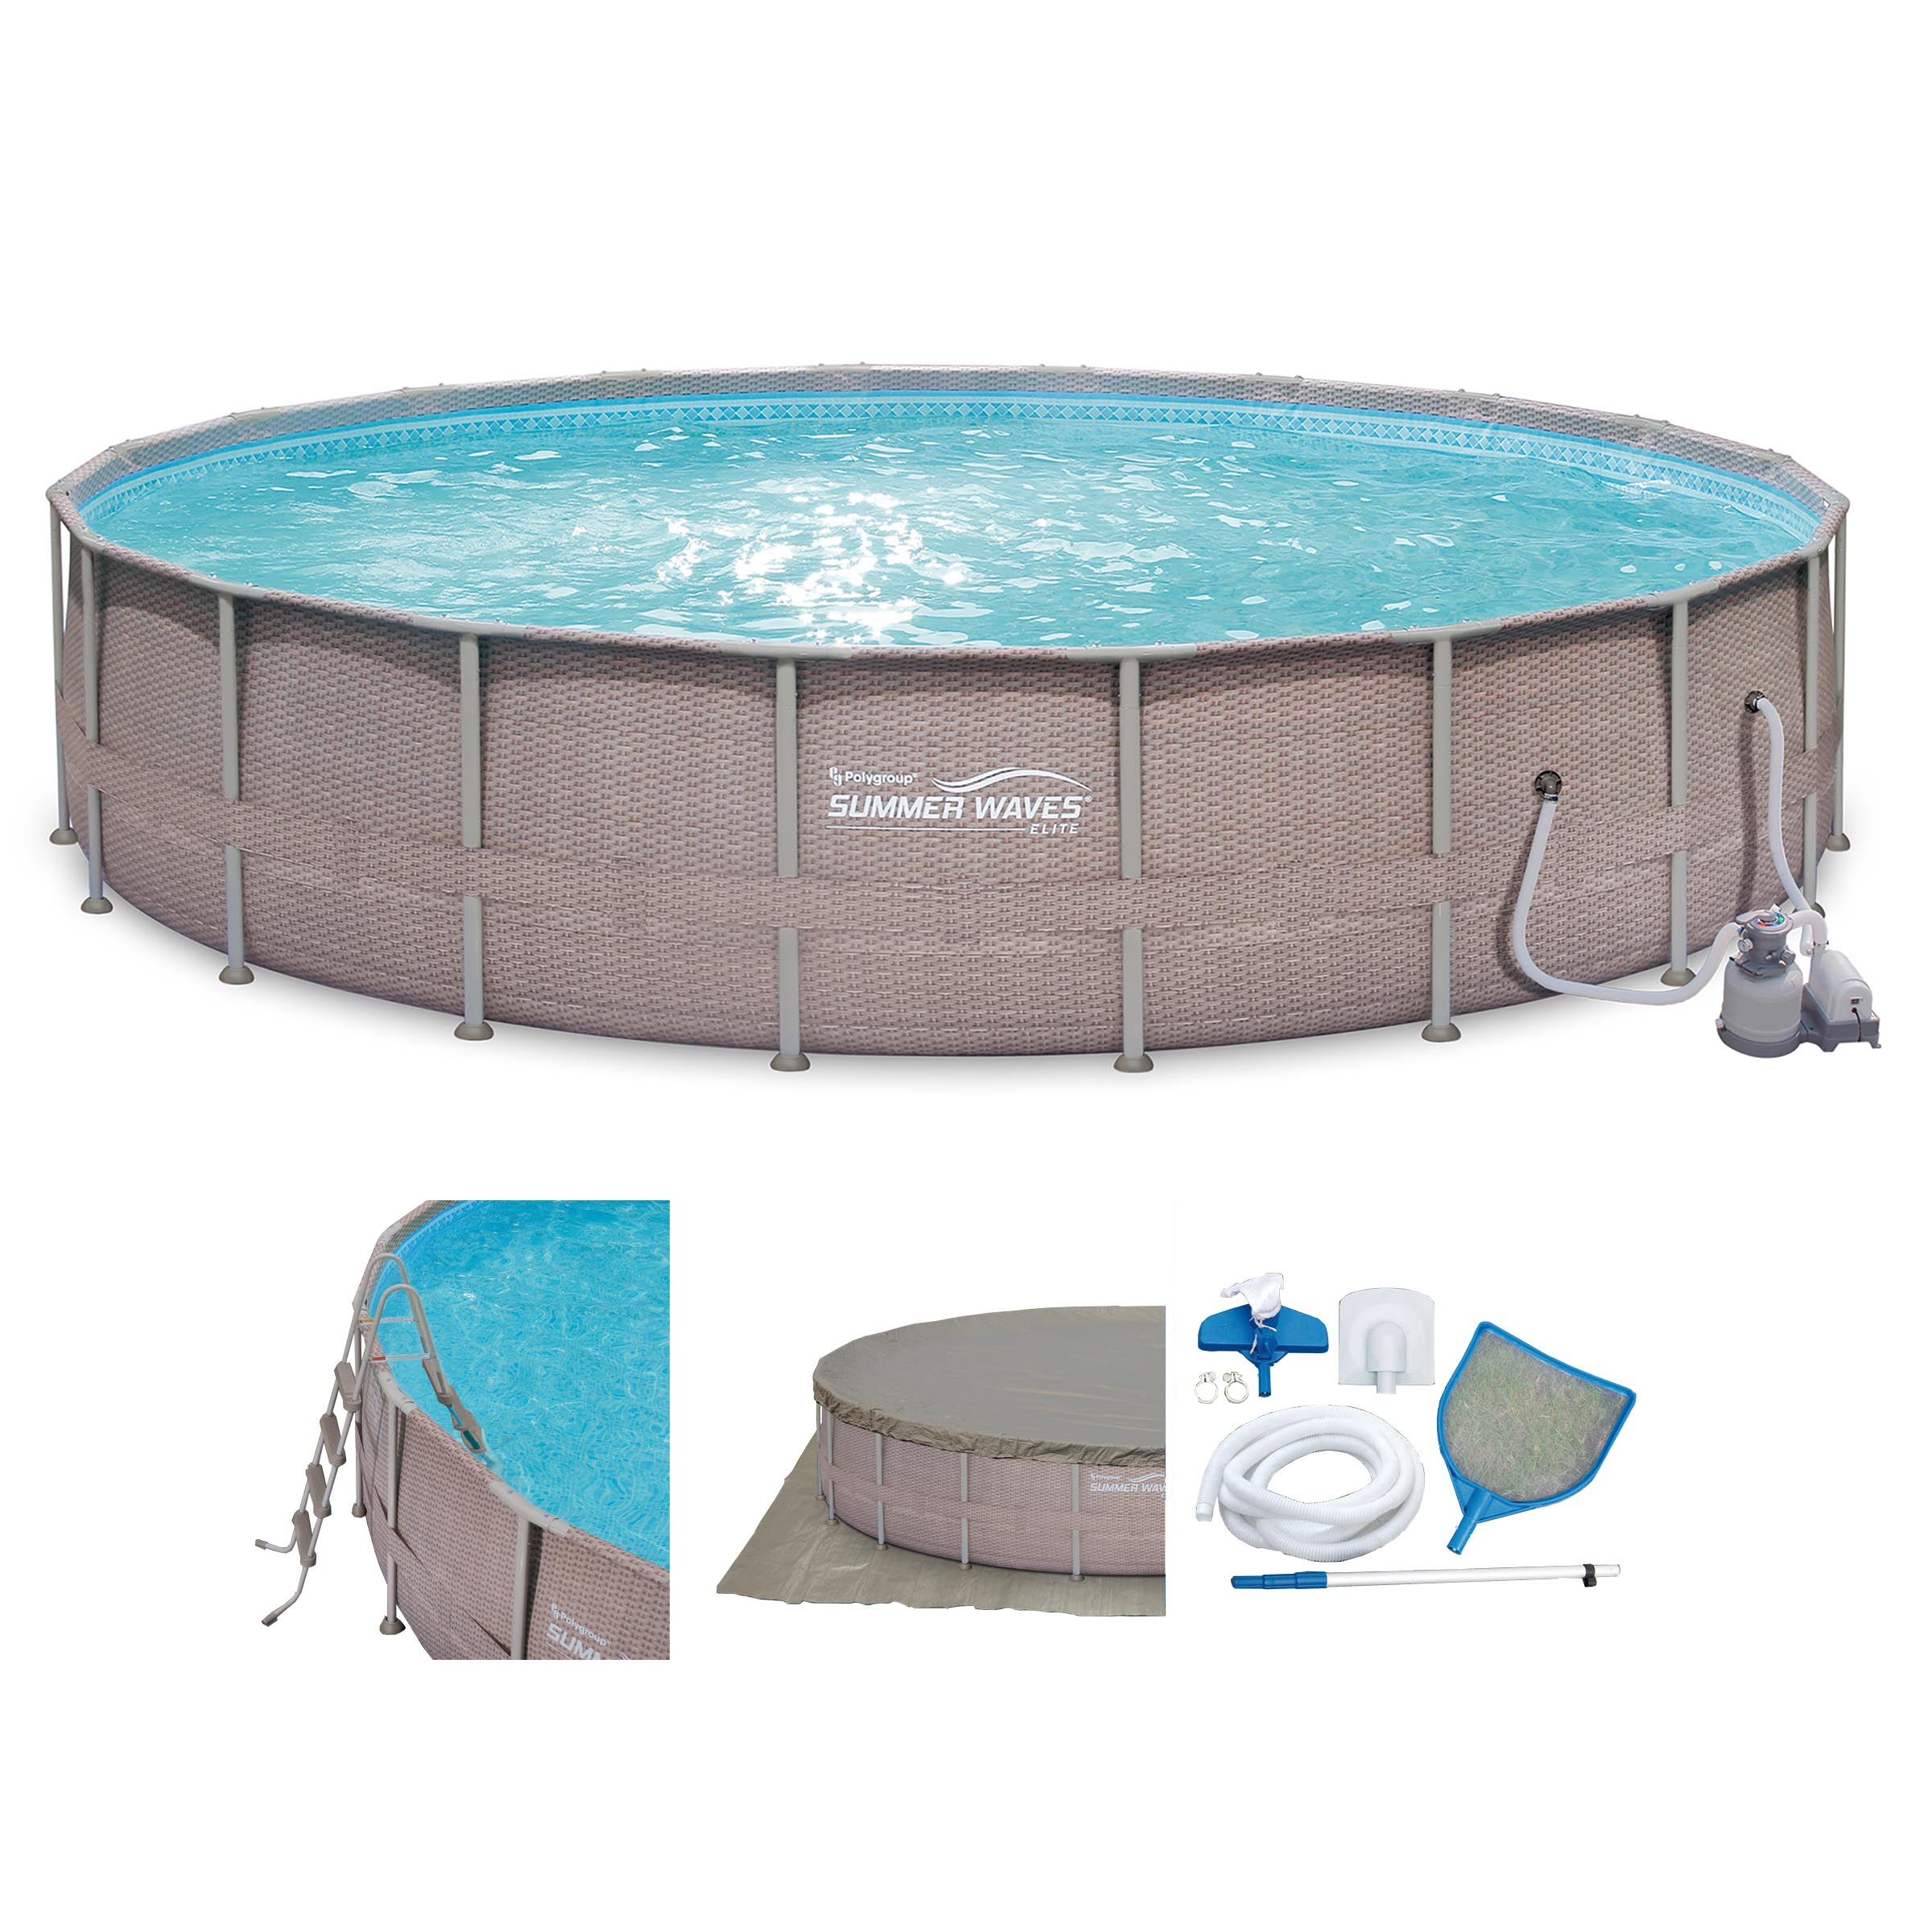 Summer waves elite wicker print 24 39 x 52 above ground for Above ground pool set